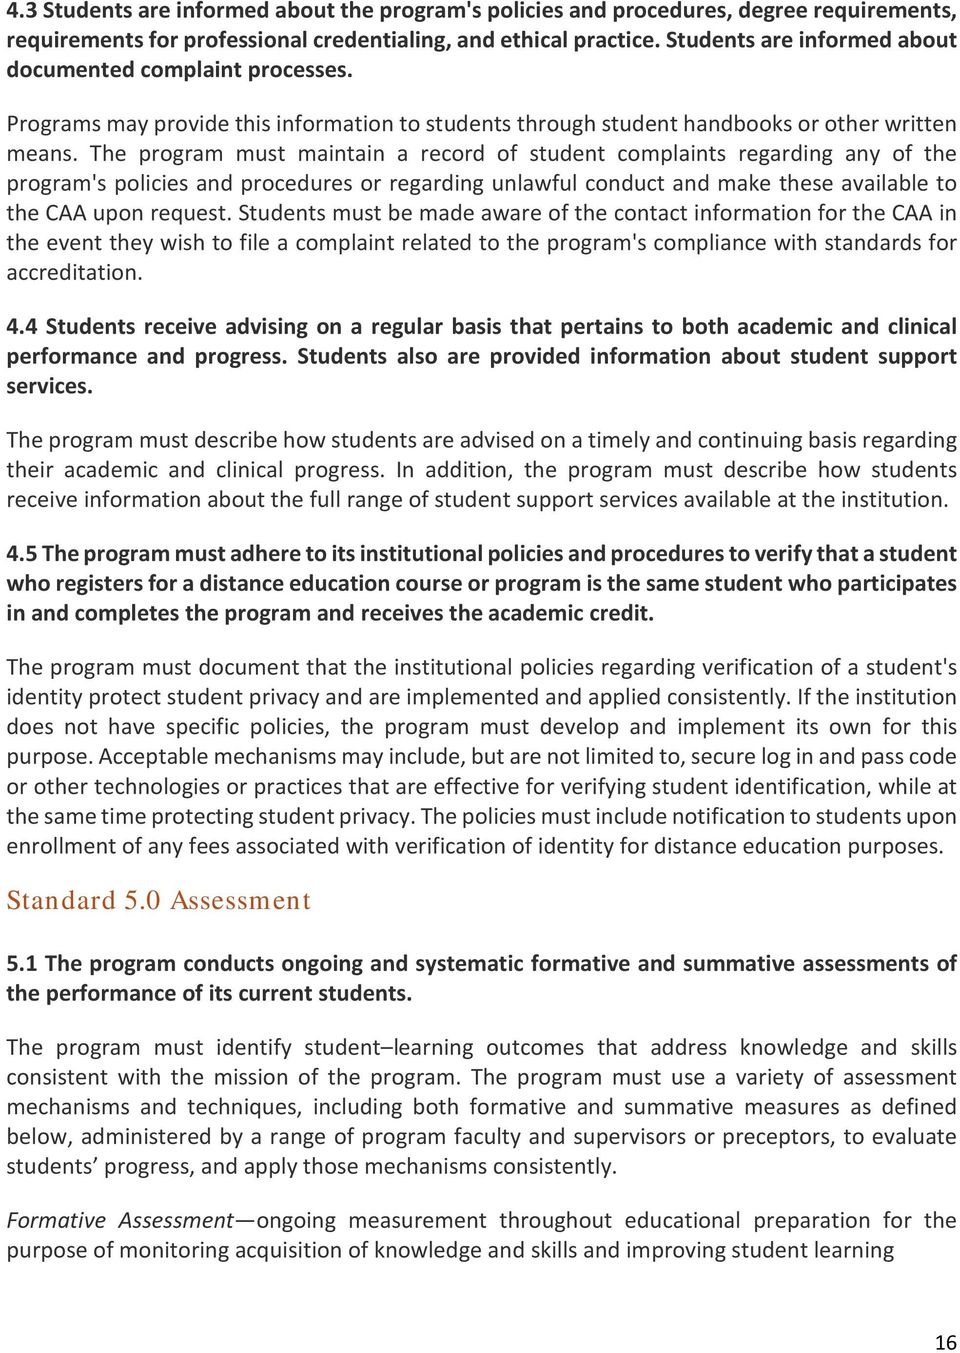 The program must maintain a record of student complaints regarding any of the program's policies and procedures or regarding unlawful conduct and make these available to the CAA upon request.